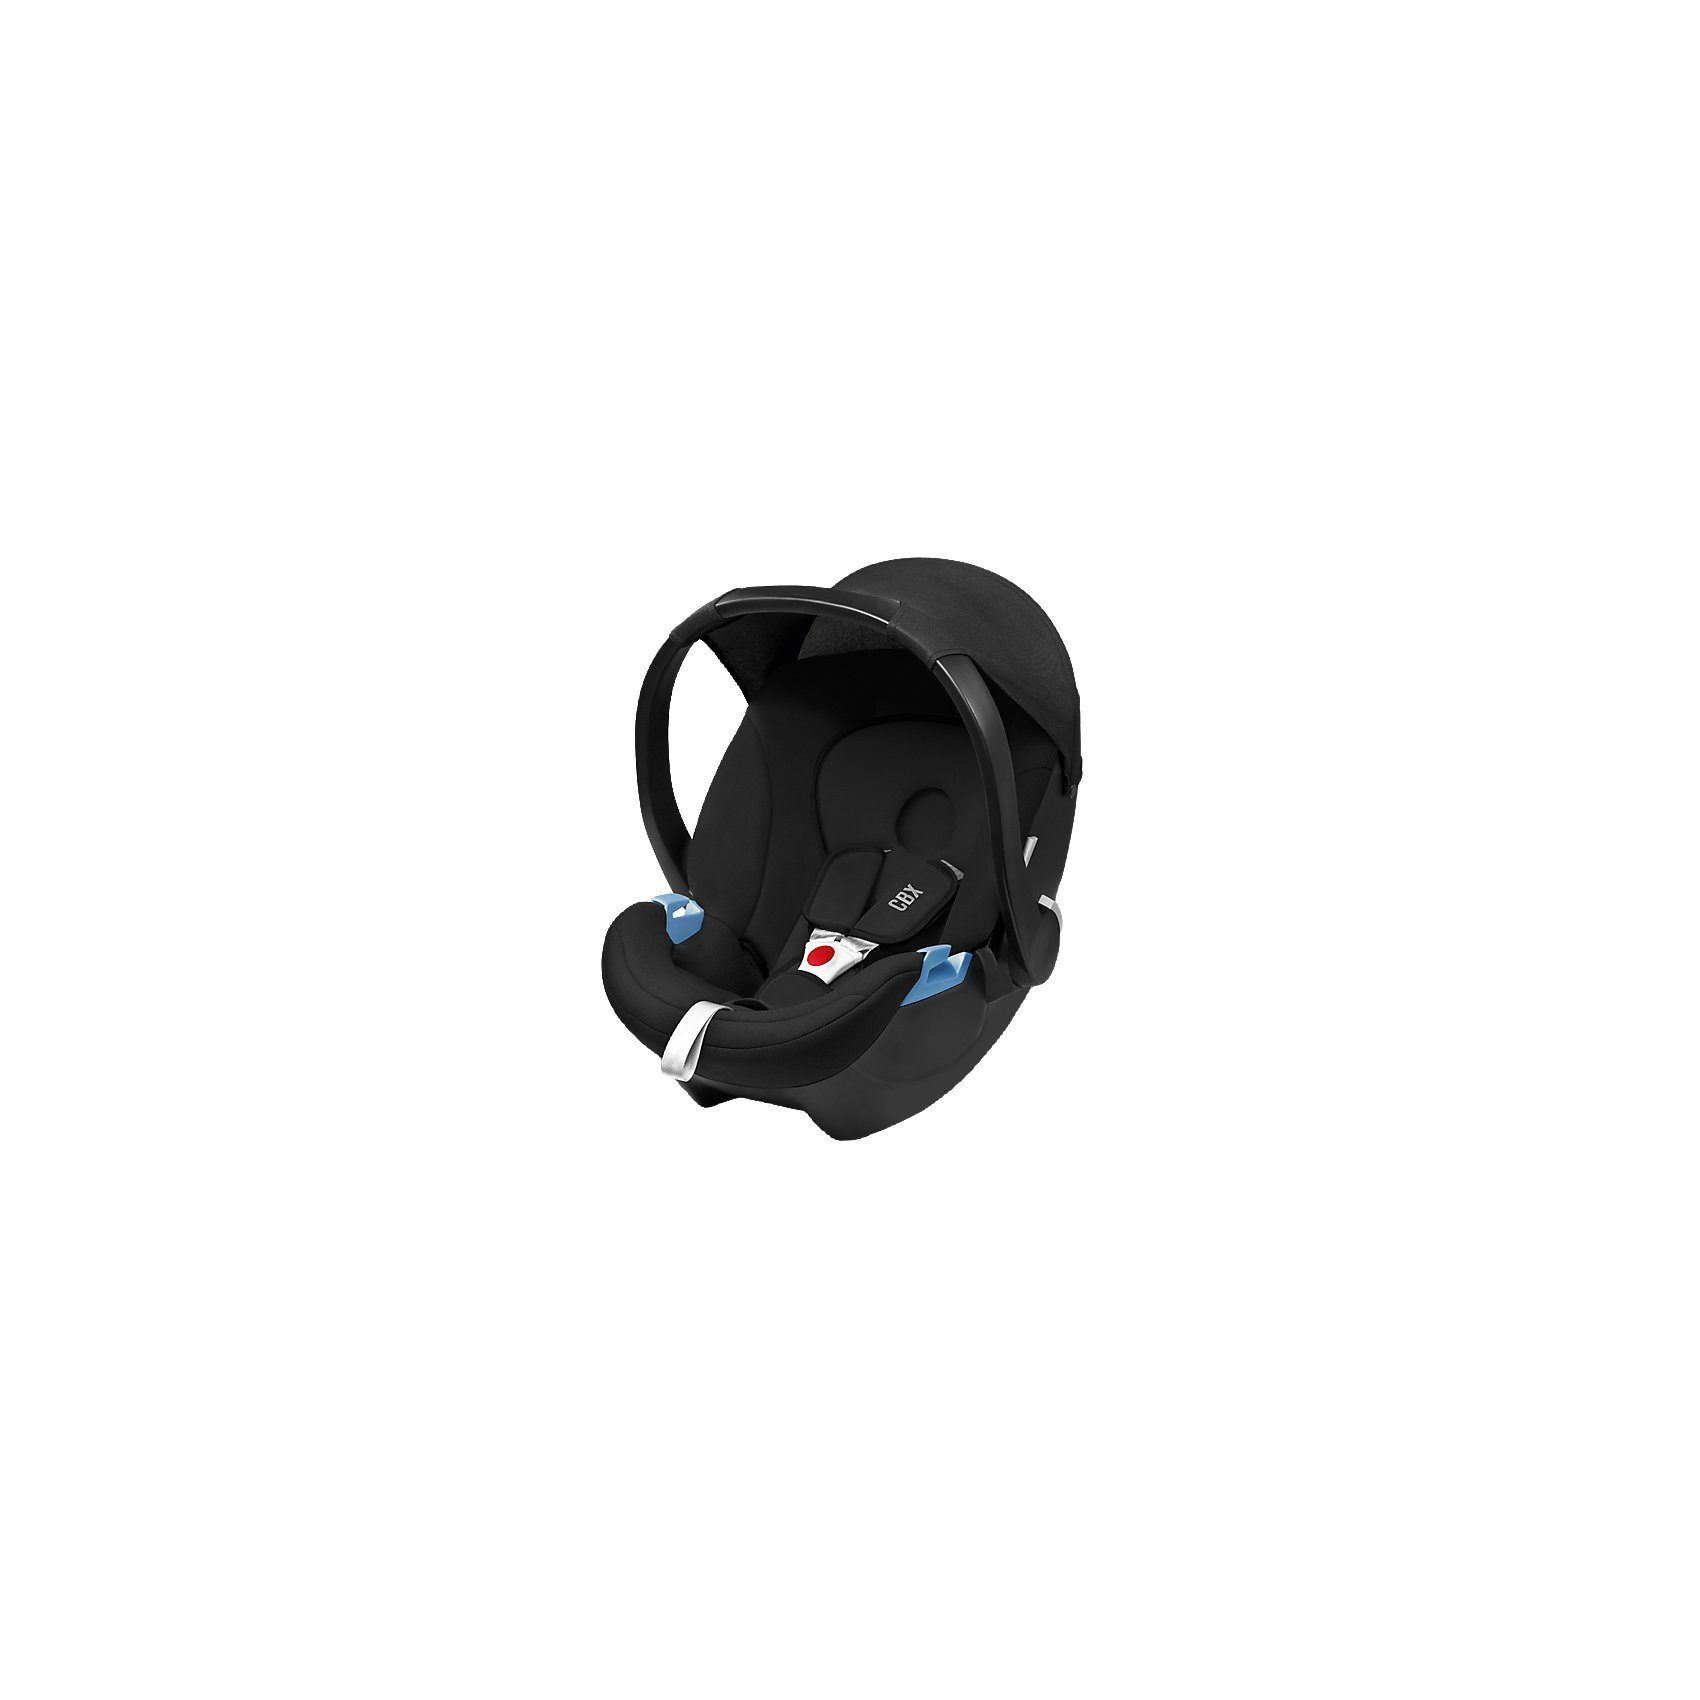 Cybex Babyschale Aton Basic, Pure Black, 2017